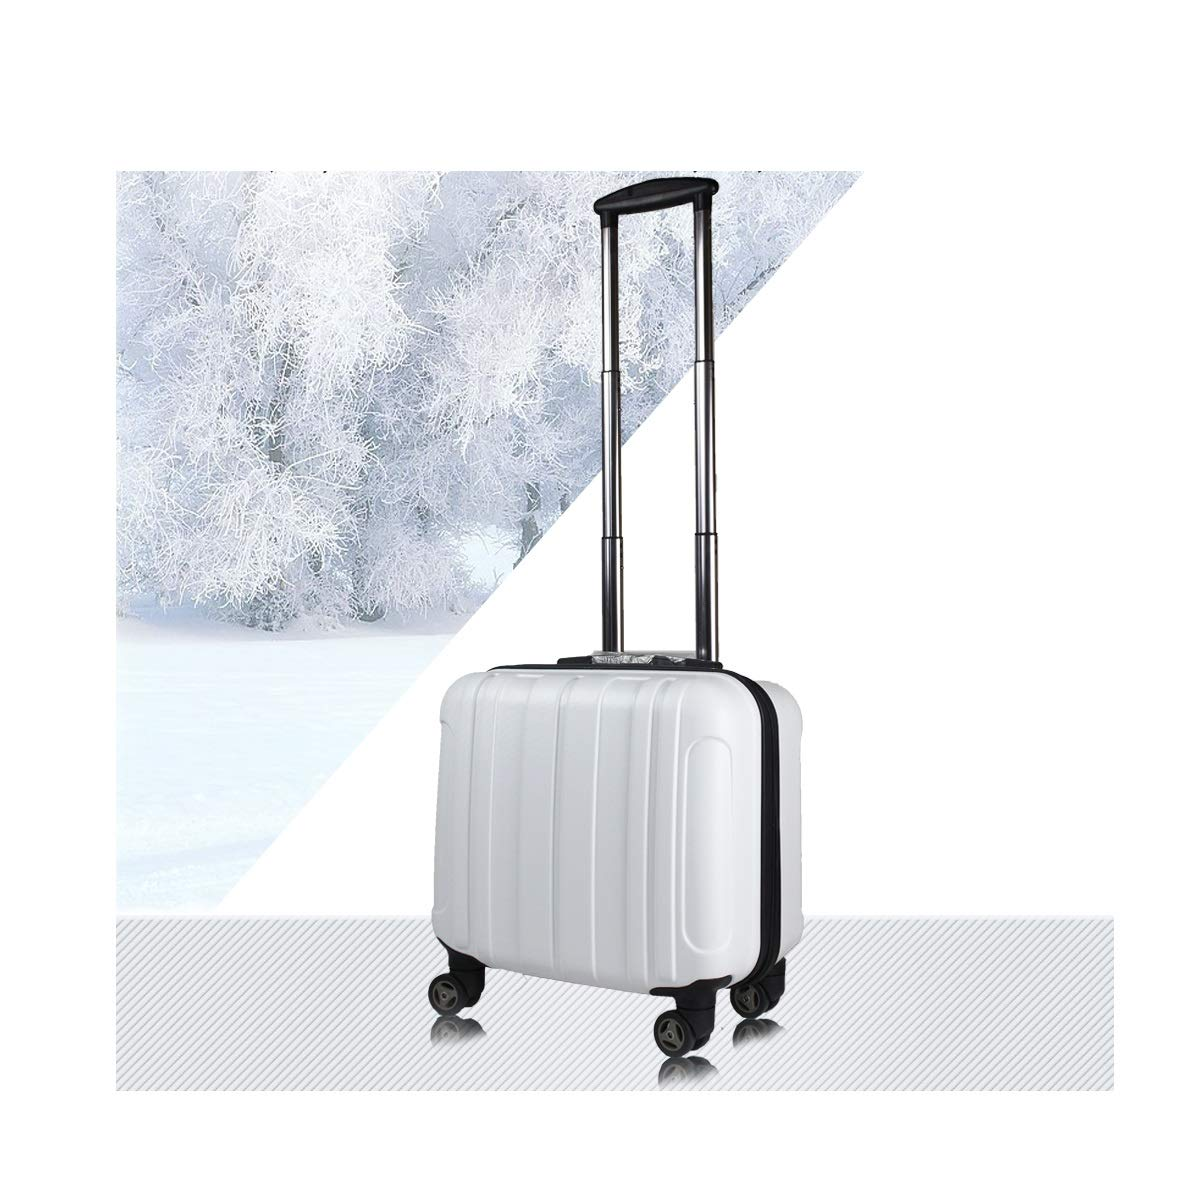 Best Gift Carrying Luggage Trolley case Color : White Simple 18 inches Huijunwenti Hard-Spinning Suitcase Travel Organizer Black The Latest Style